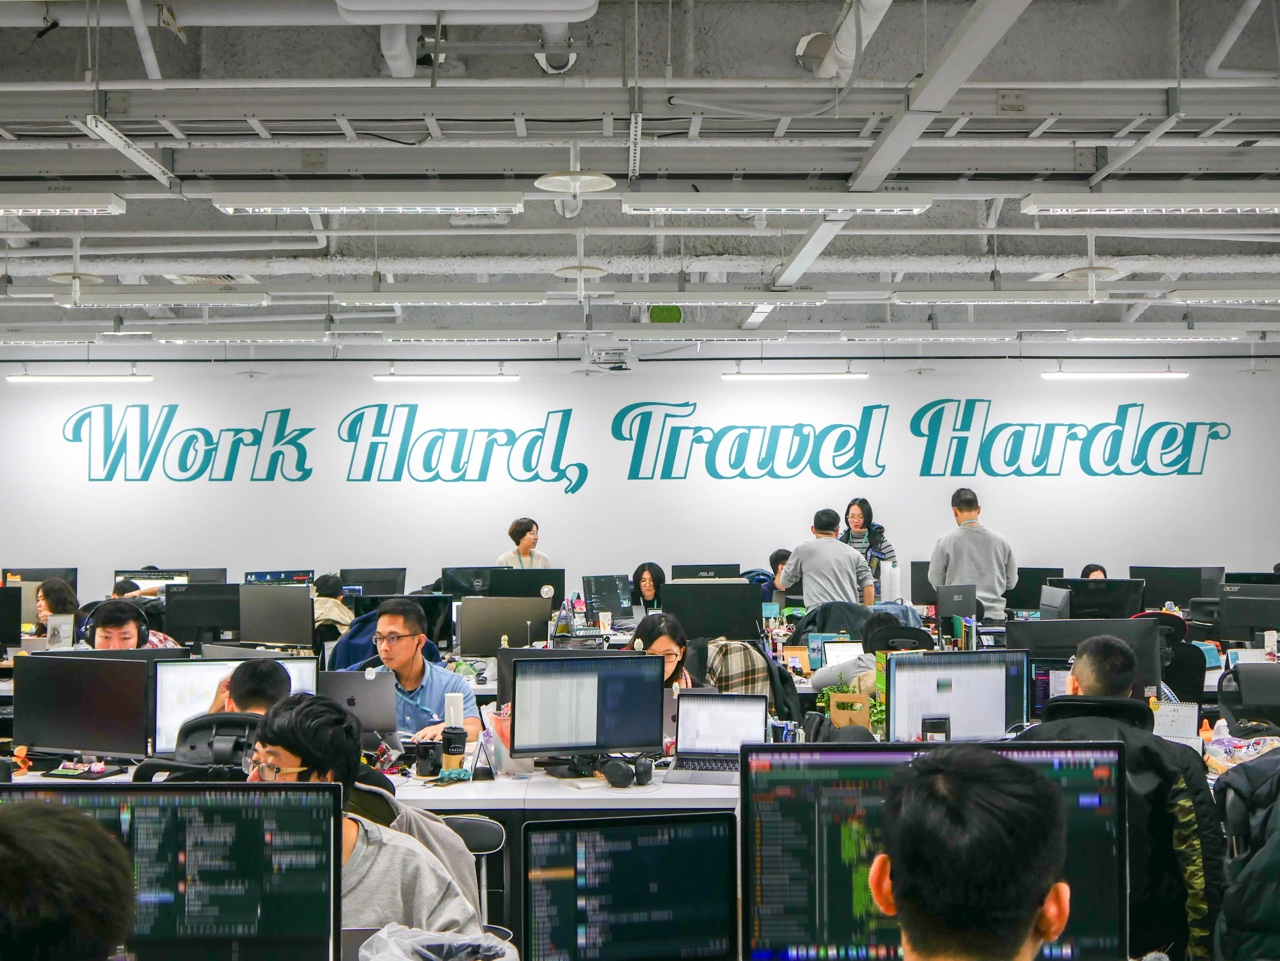 KKdayの社是 Work Hard, Travel harder